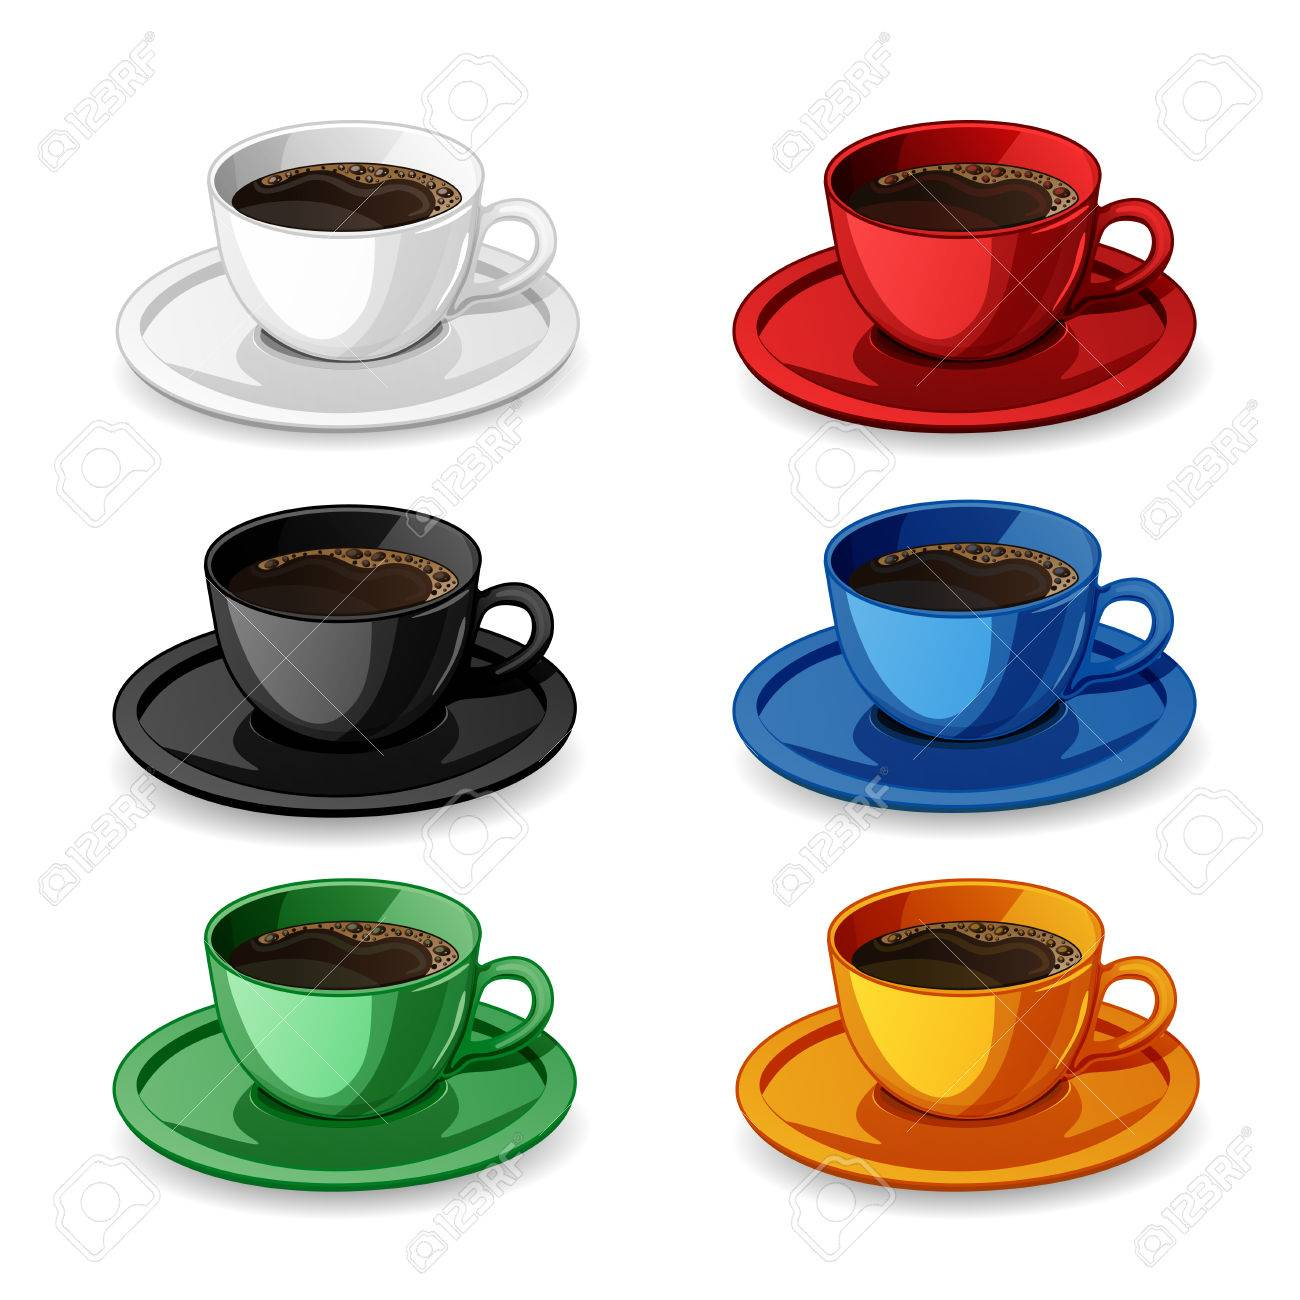 set of colorful coffee cups isolated on white royalty free